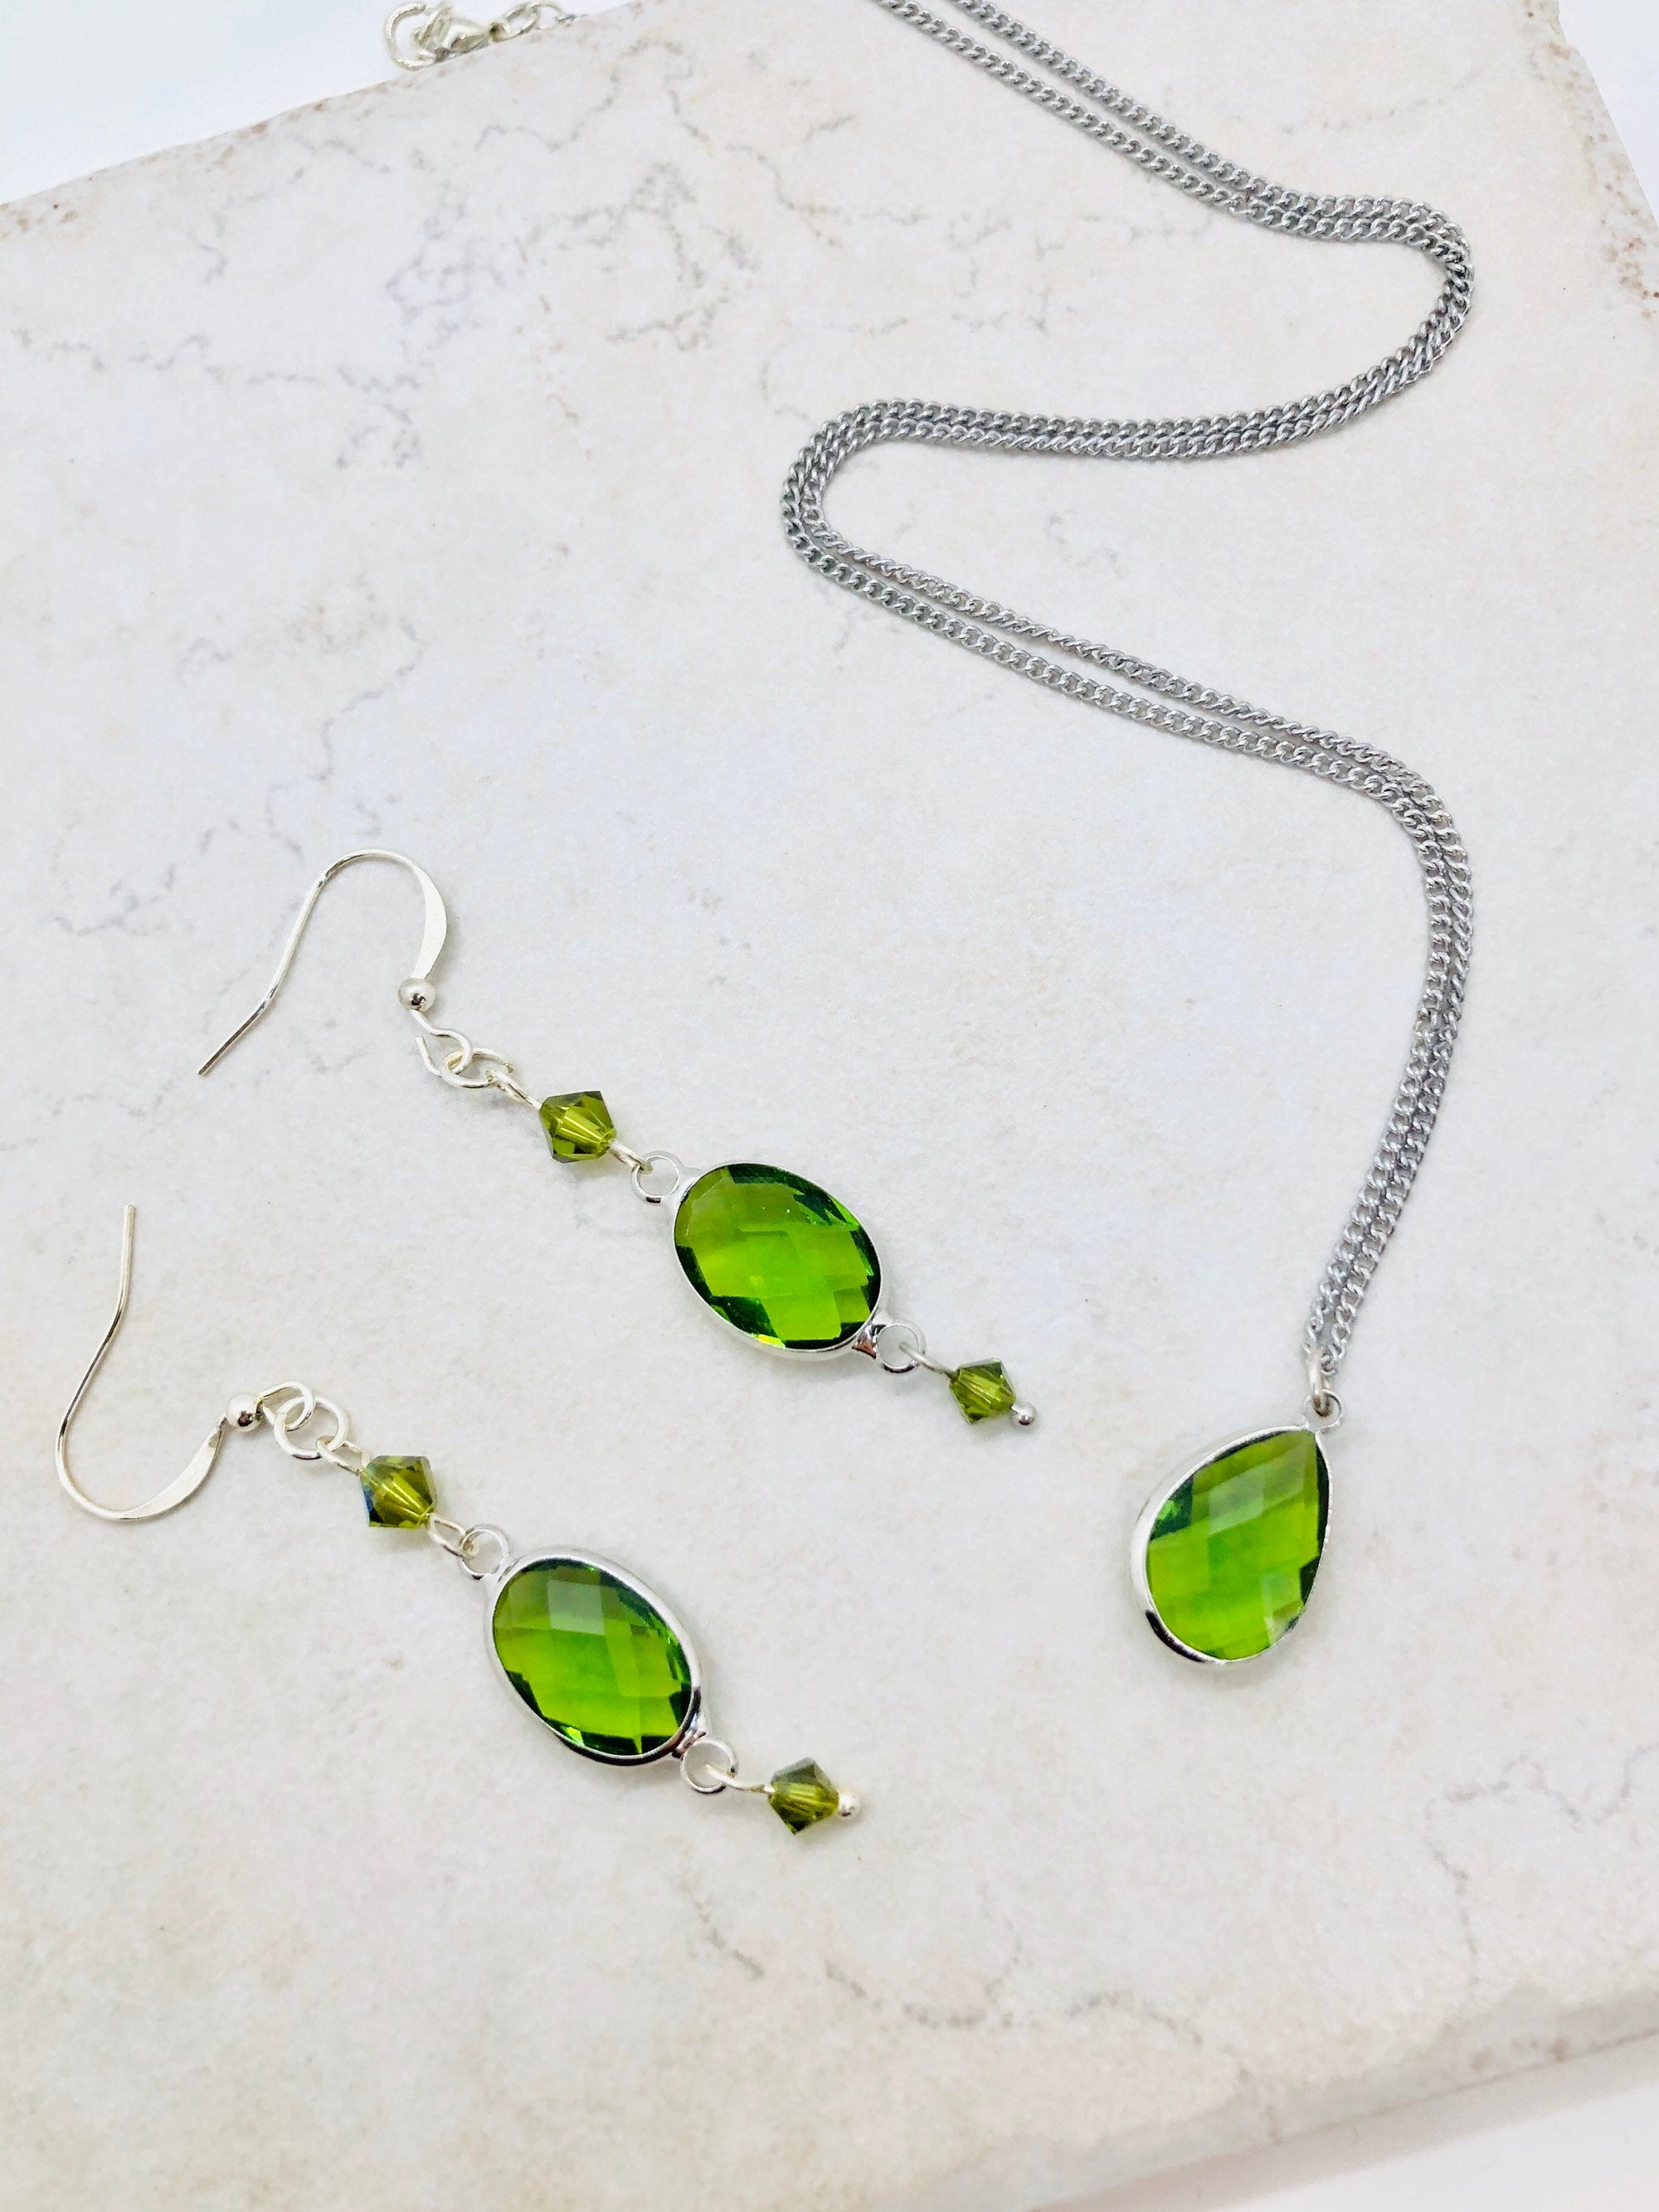 August jewelry, August birthstone necklace for mom peridot earrings dangle, quarantine birthday gift for her sweet 16 gift for granddaughter